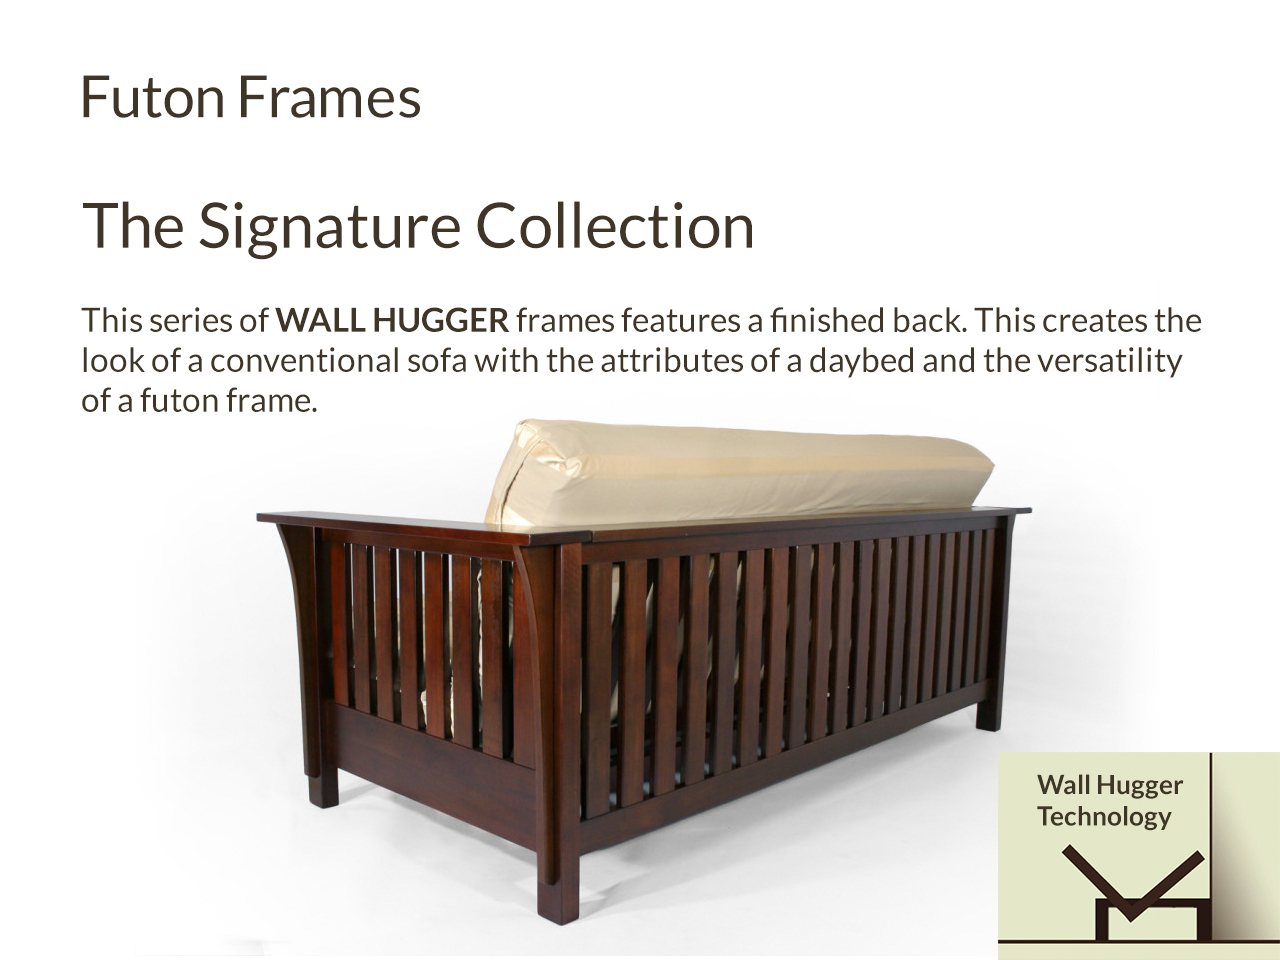 Futons Waterbeds Organic Mattresses Bunk Beds Bean Bags and More